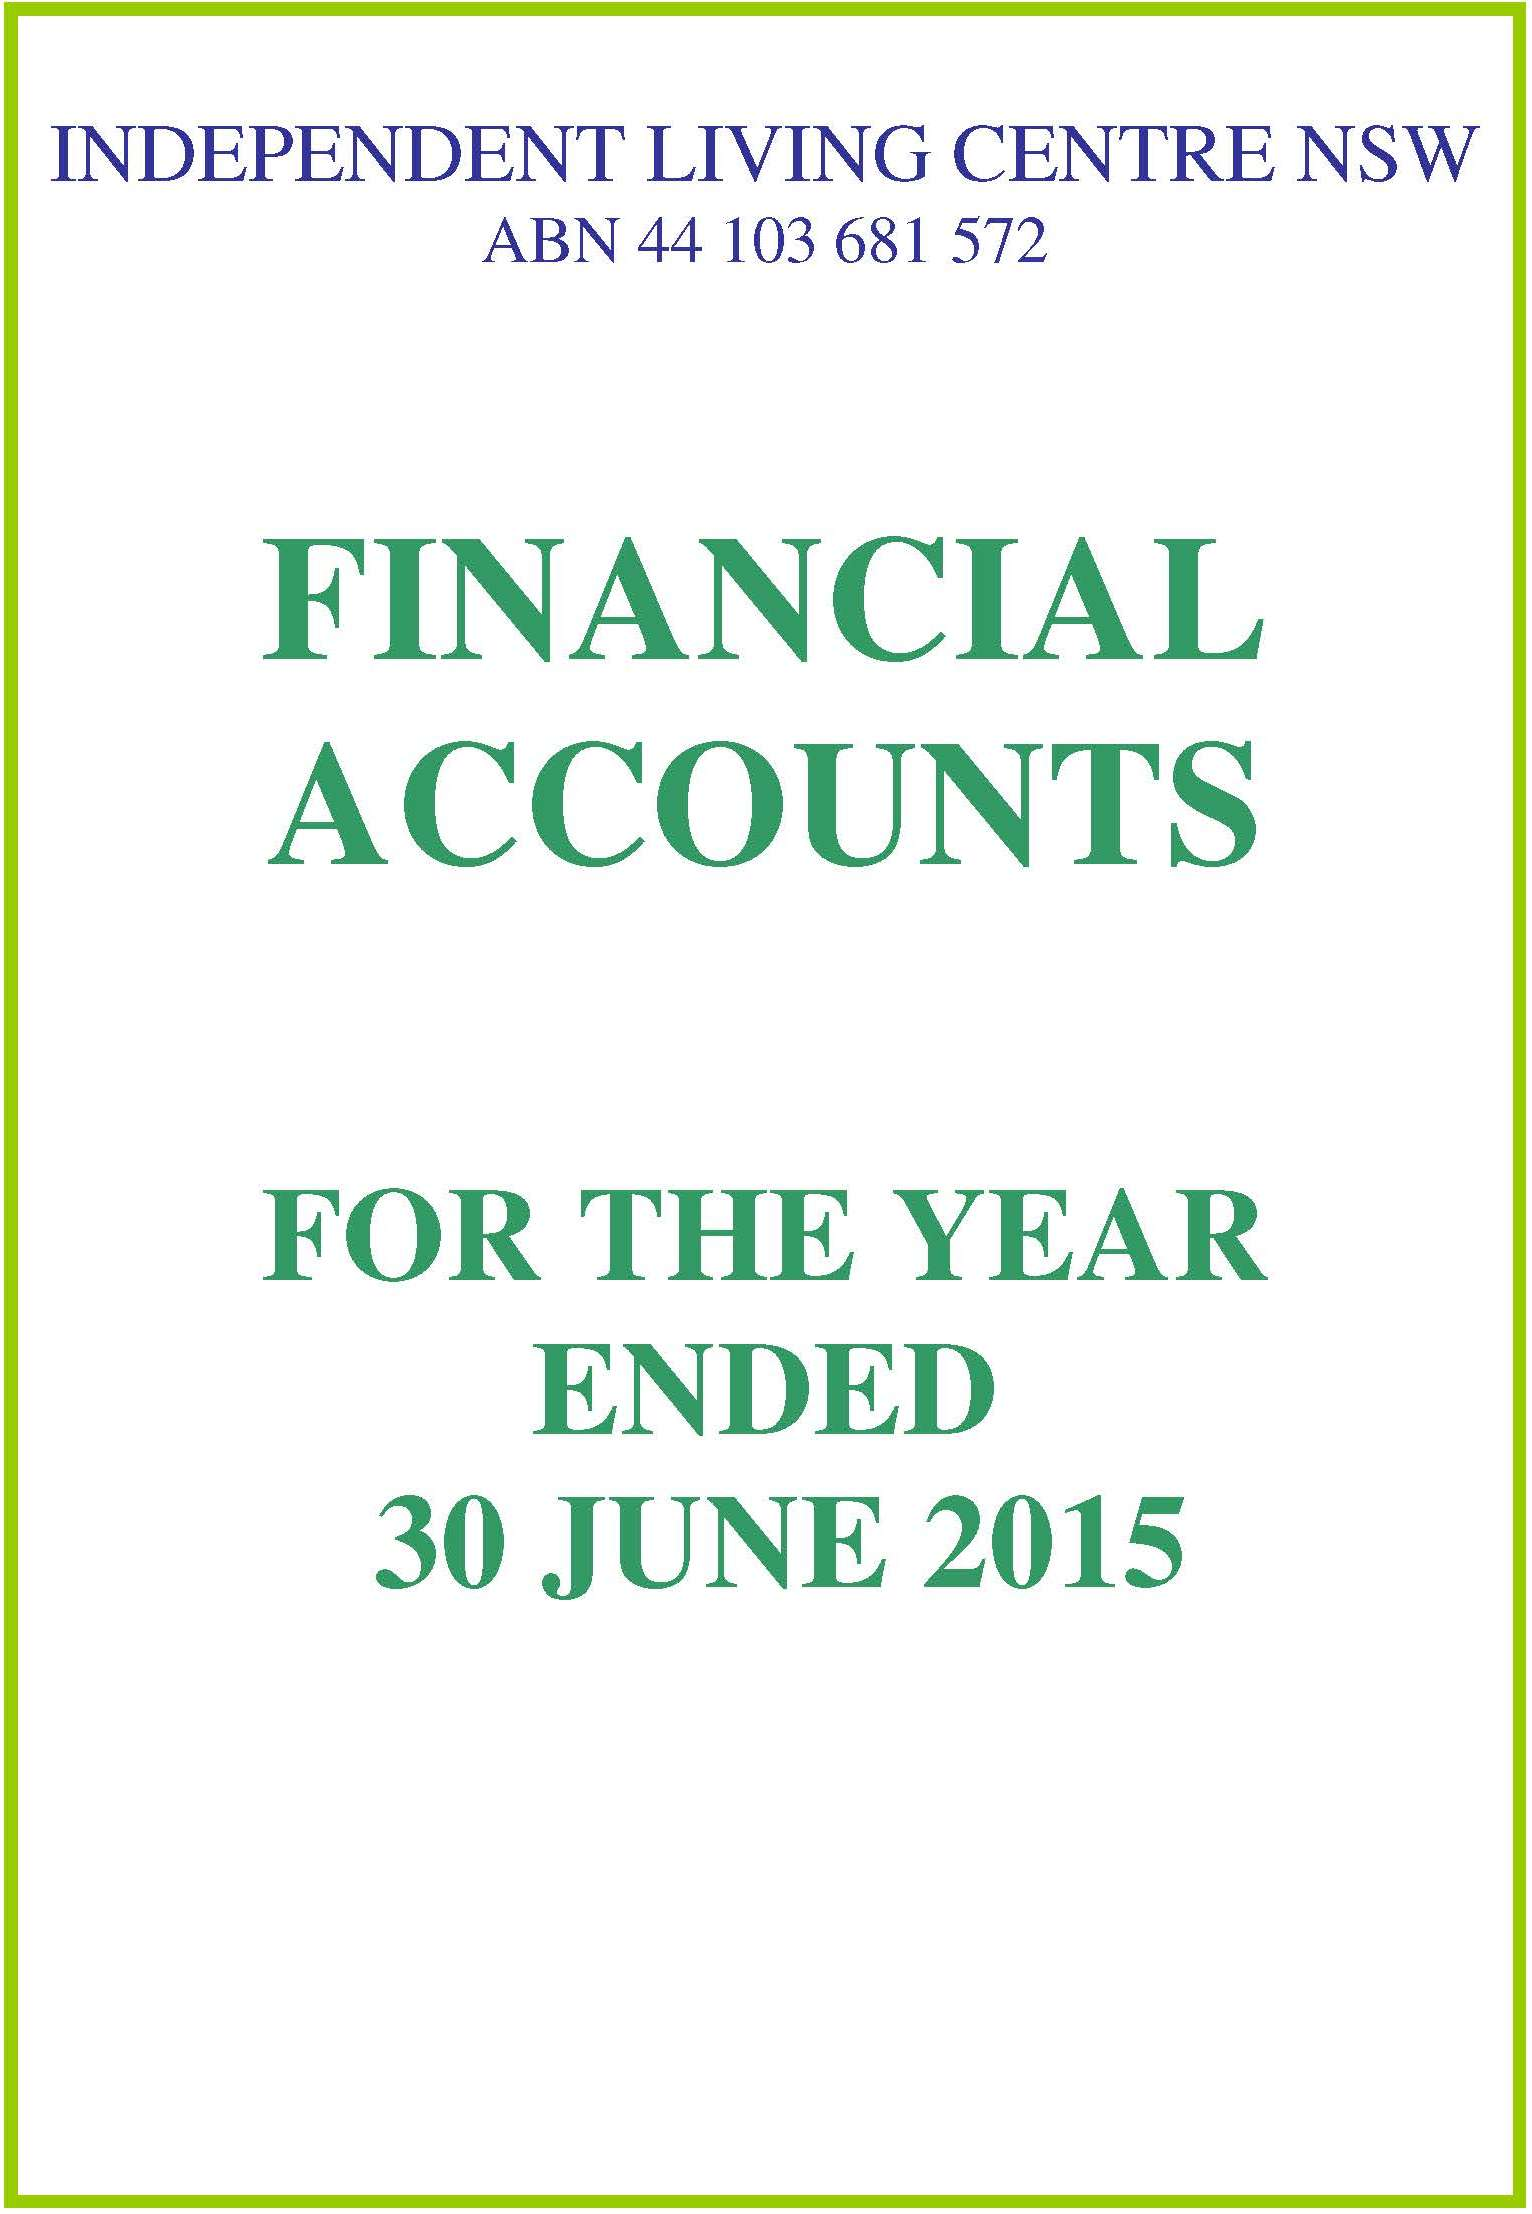 2014-2015 ILC Financial Report